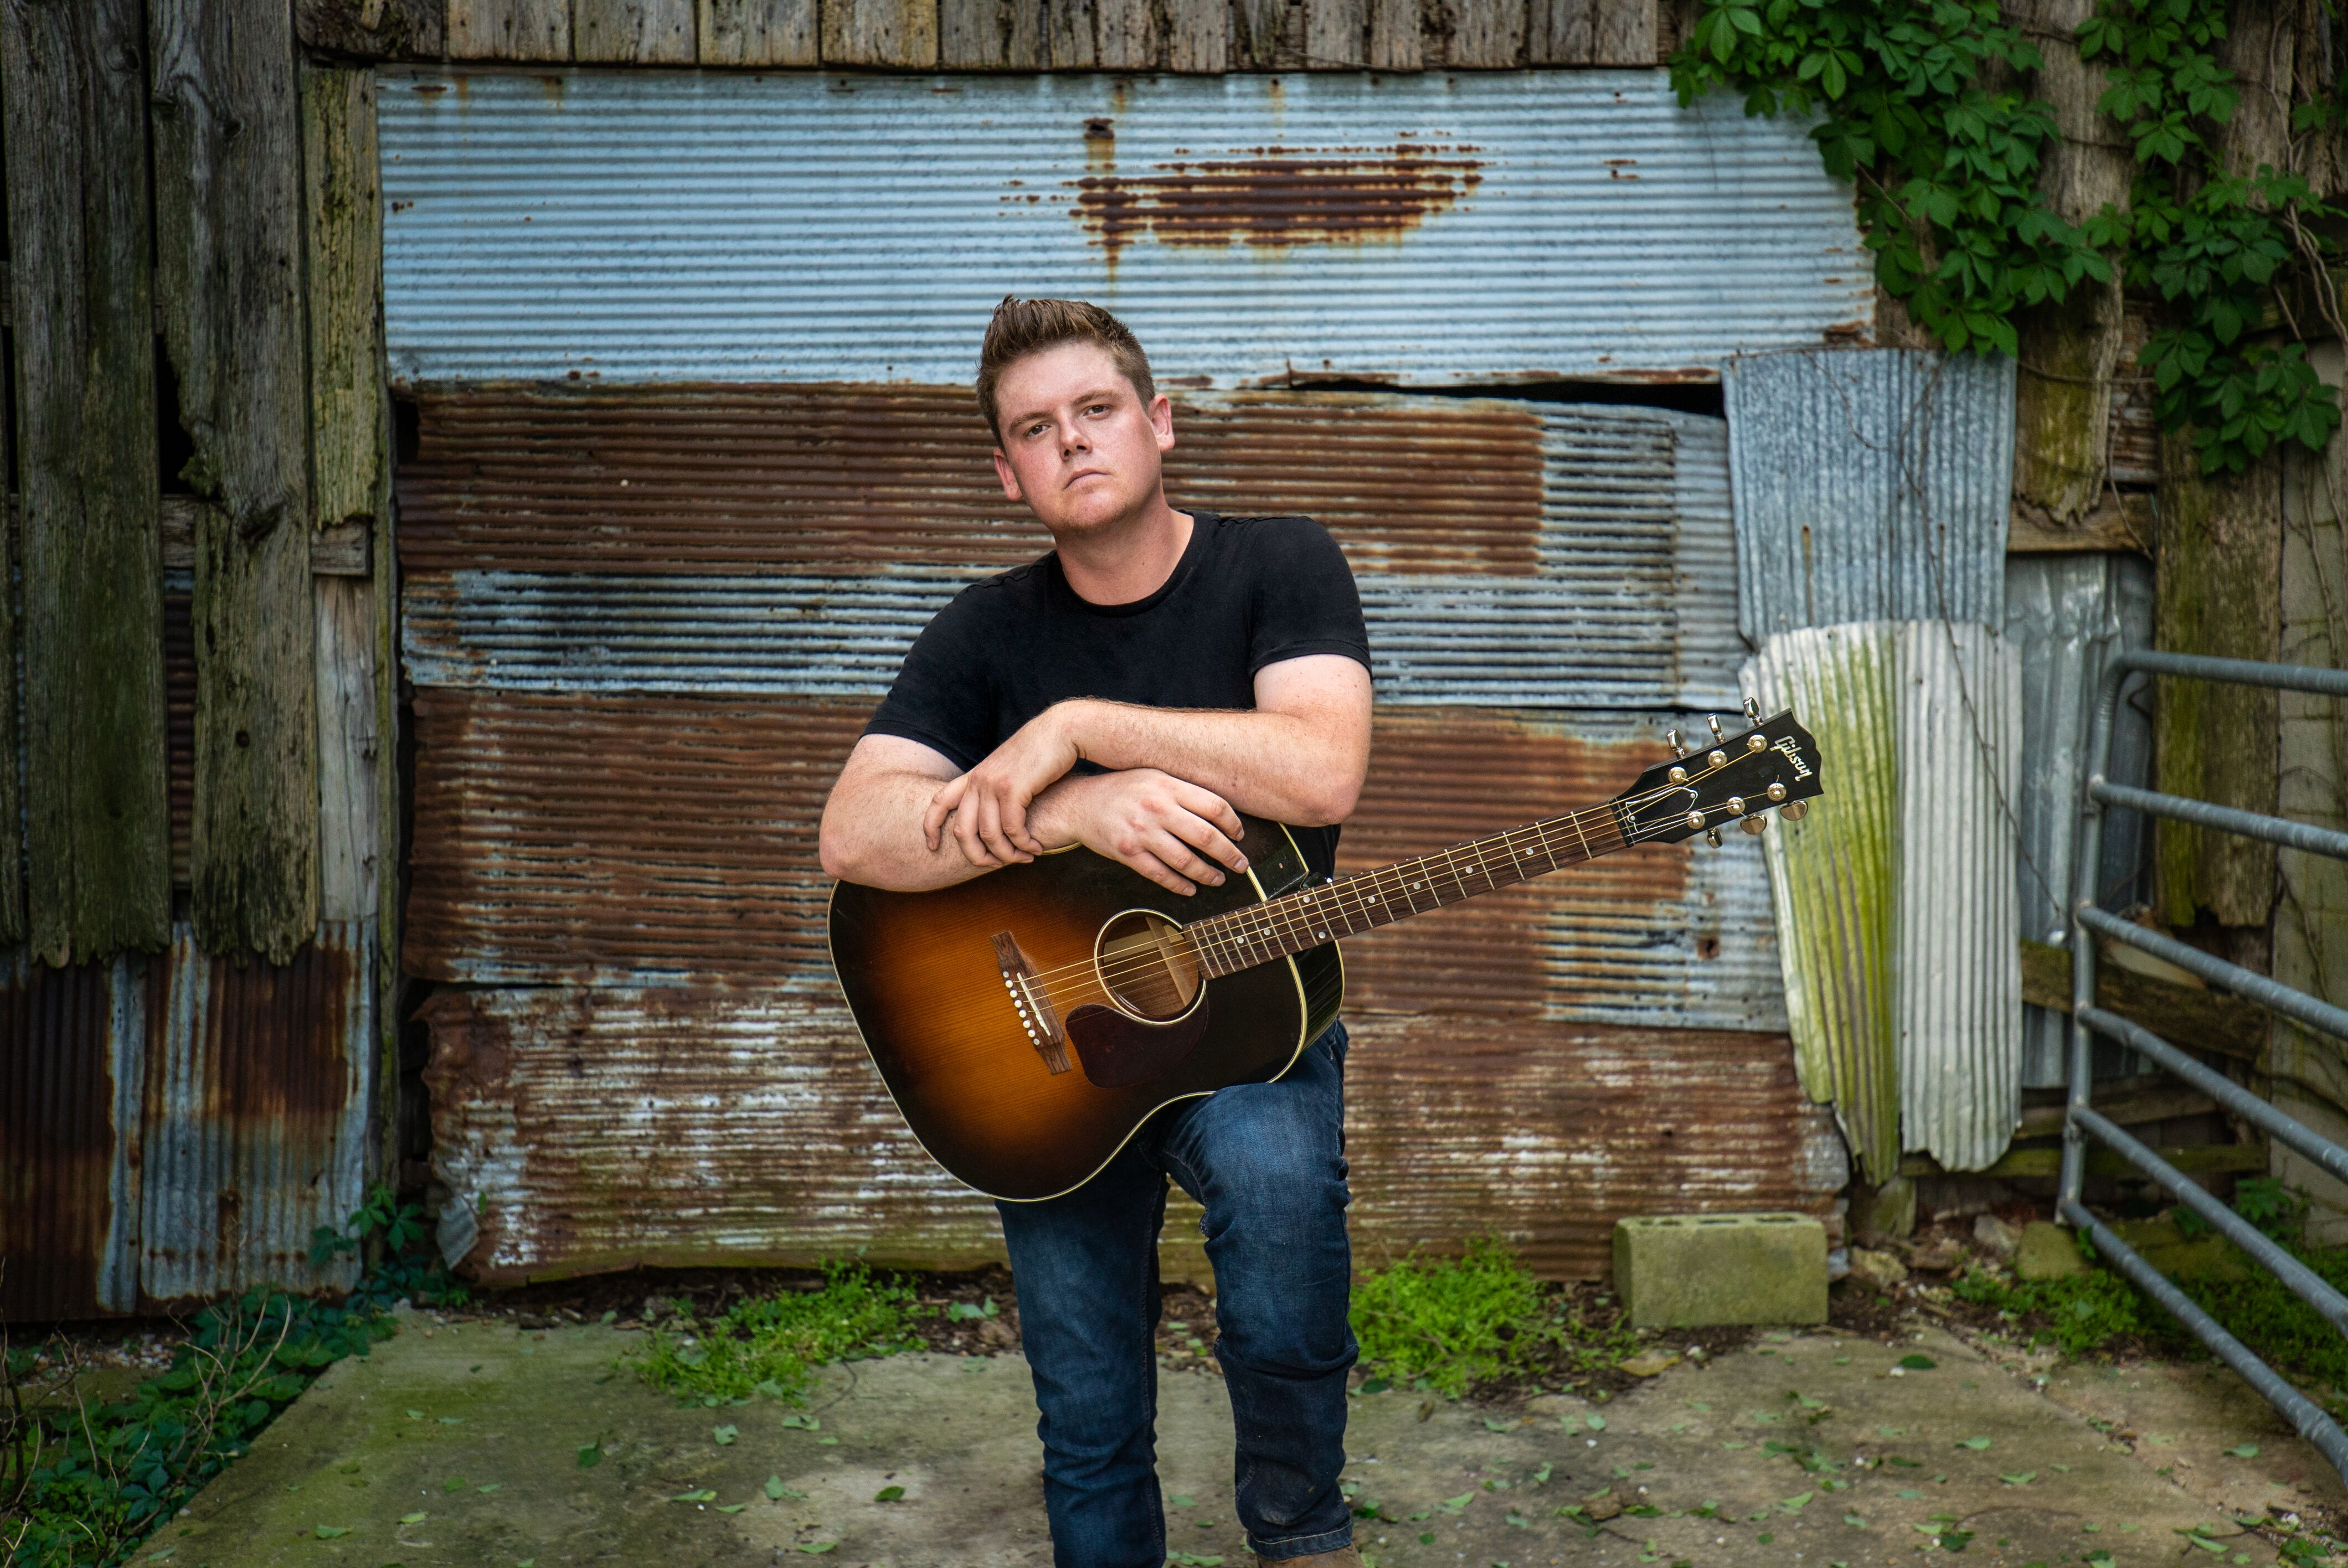 Dustin Collins proves country music is not dead with new song